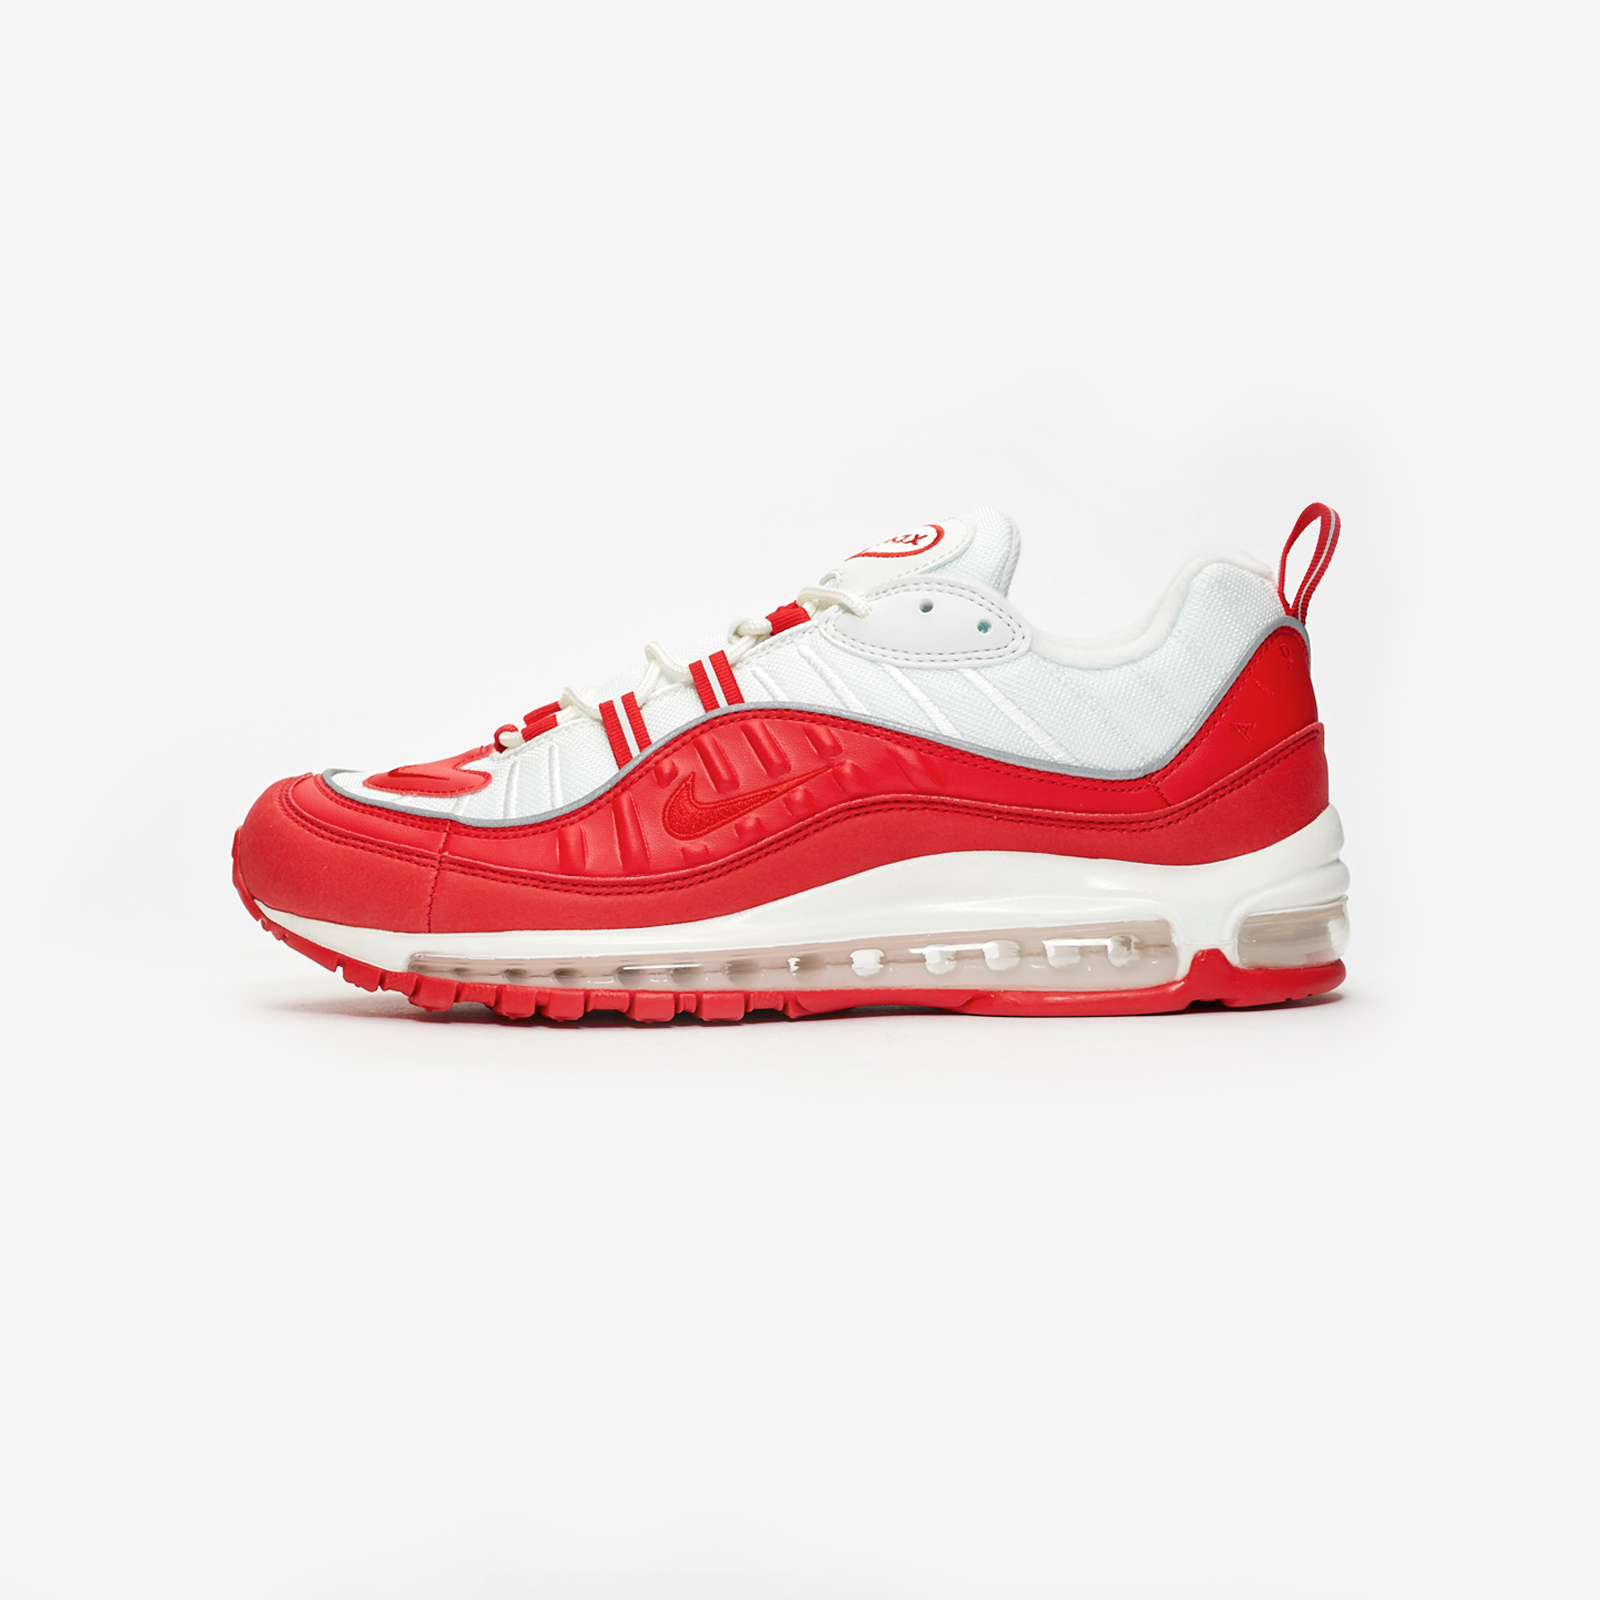 new concept f5e77 98e3d Nike Air Max 98 - 640744-602 - Sneakersnstuff   sneakers   streetwear  online since 1999